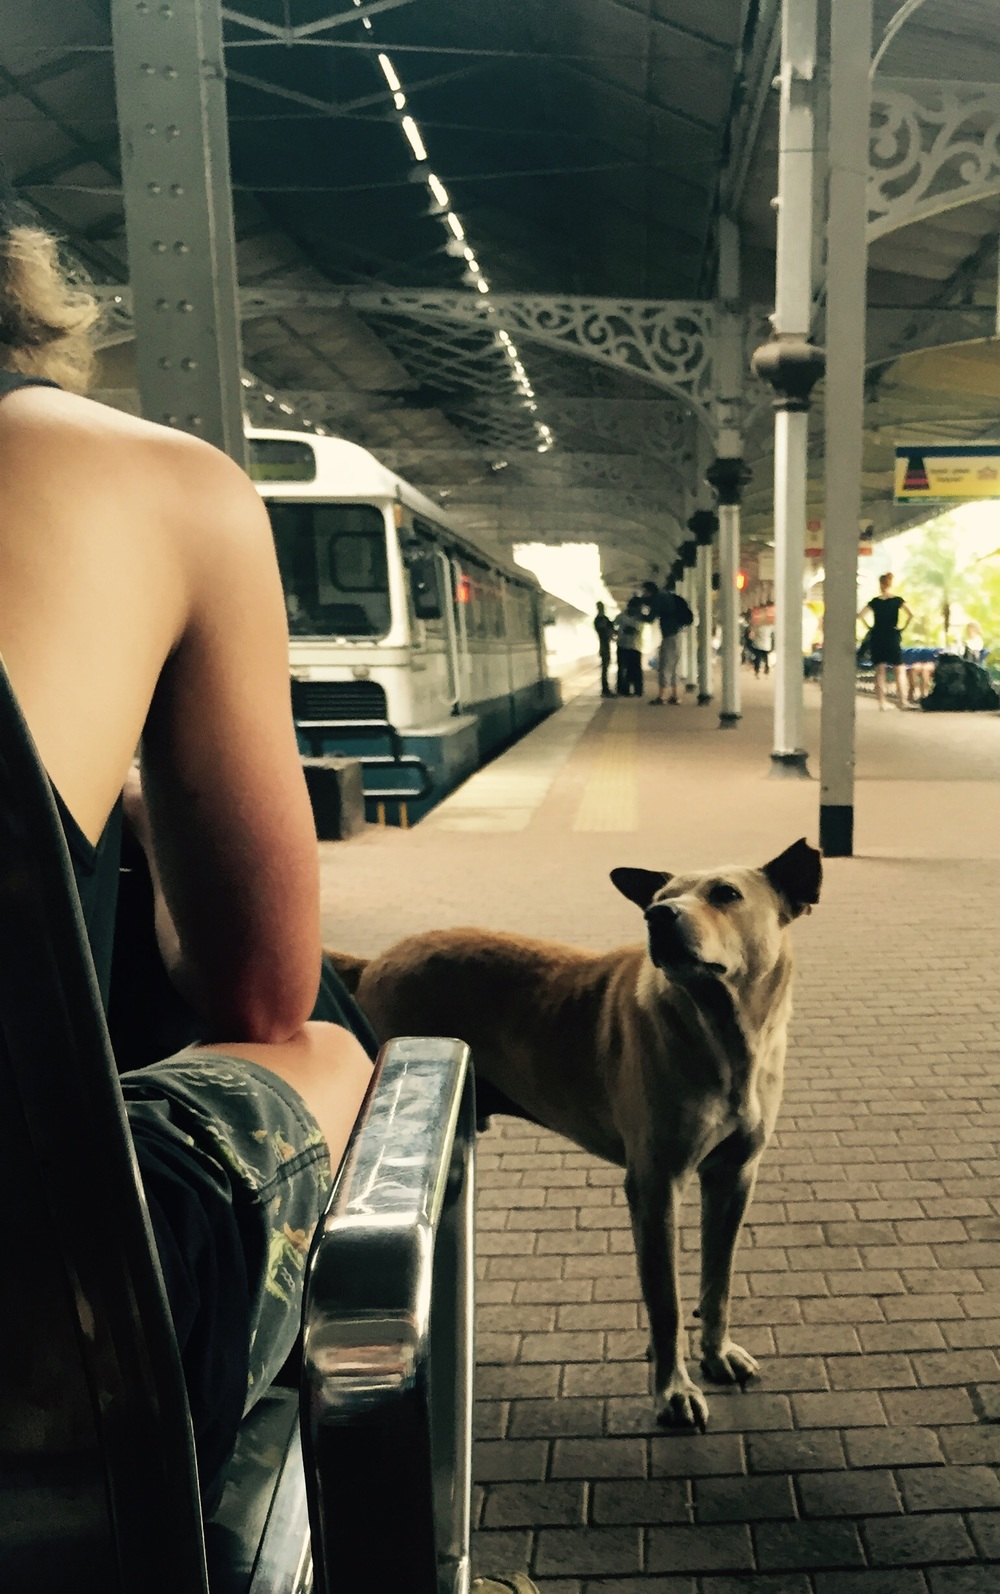 Train station brown dog.